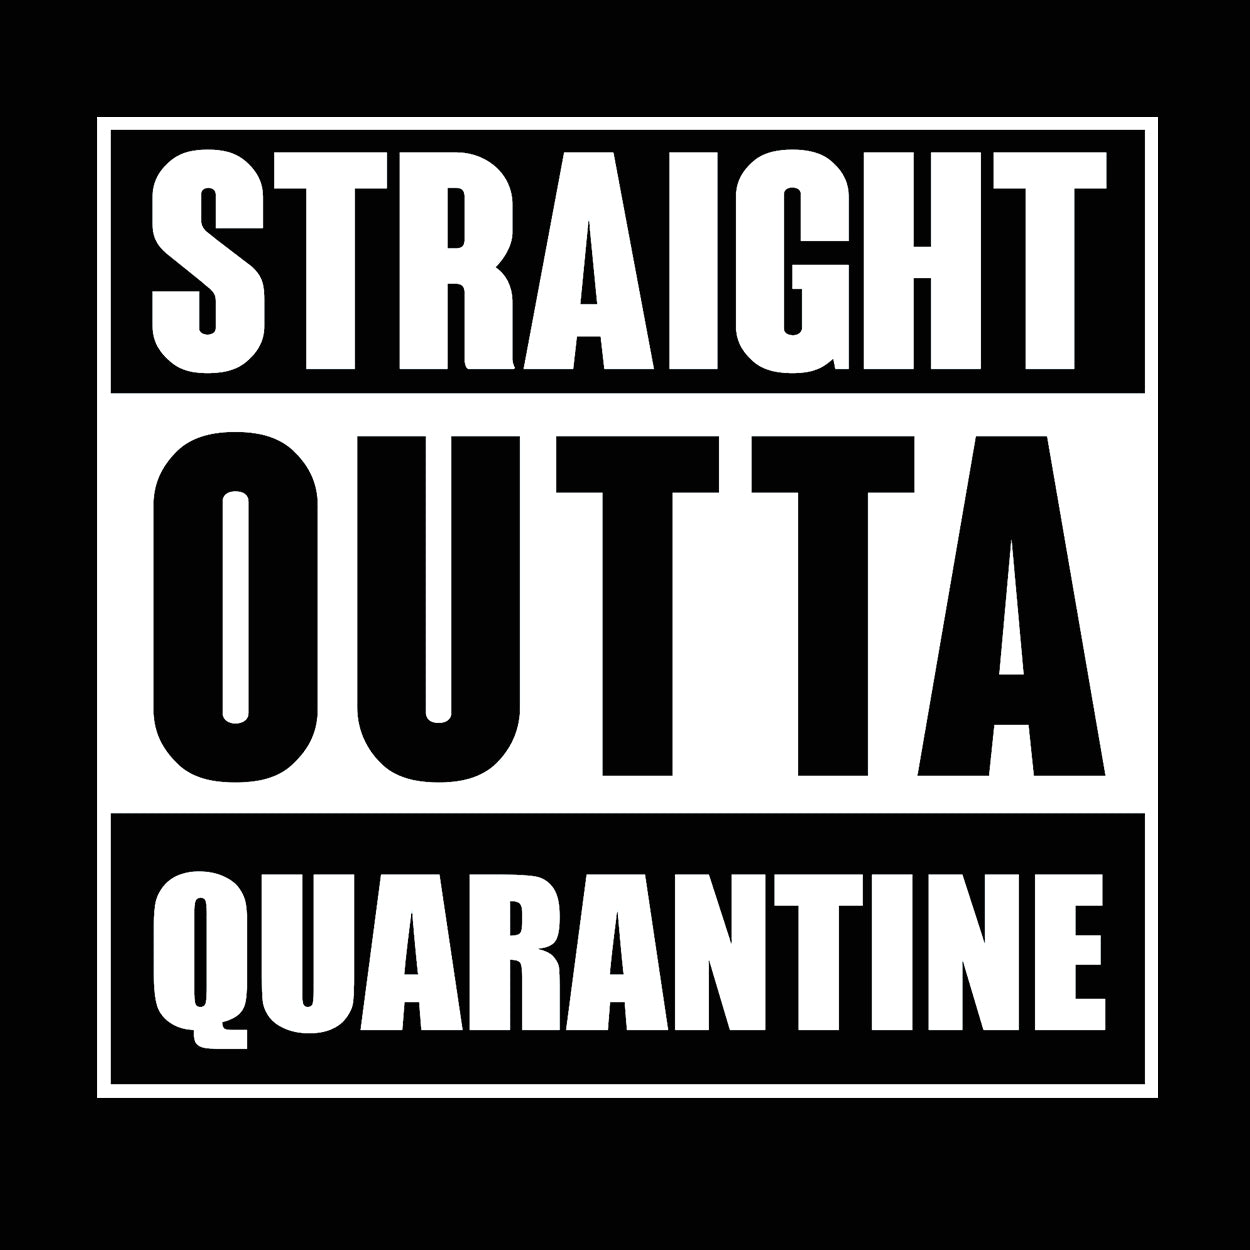 Straight Outta Quarantine - DonkeyTees